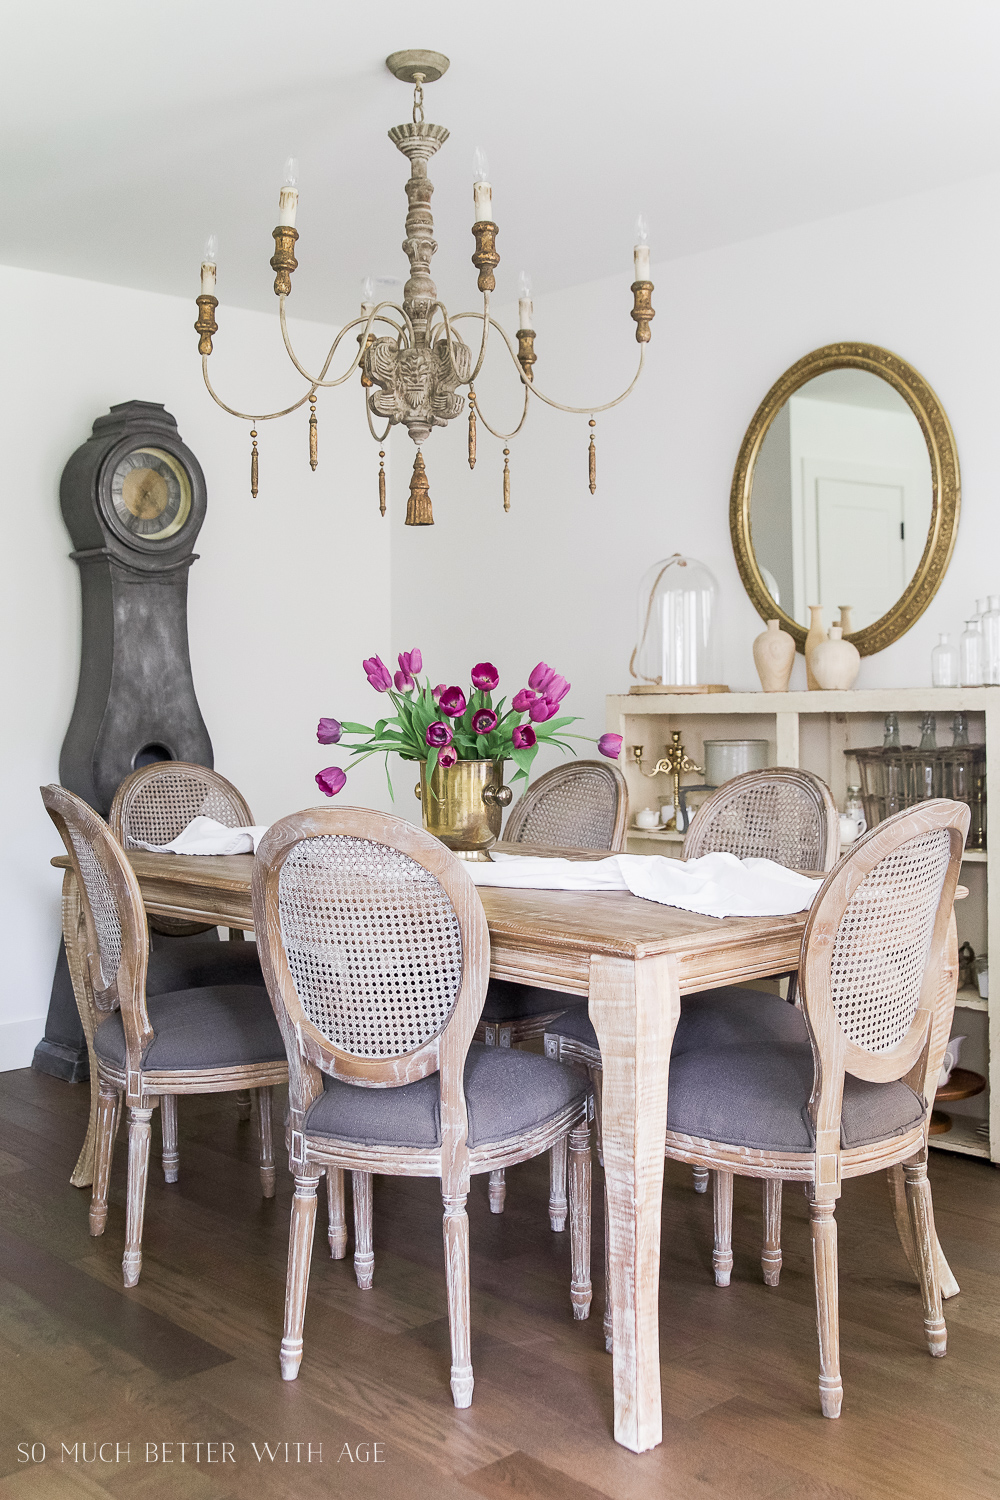 French Vintage Dining Room/French chandelier - So Much Better With Age